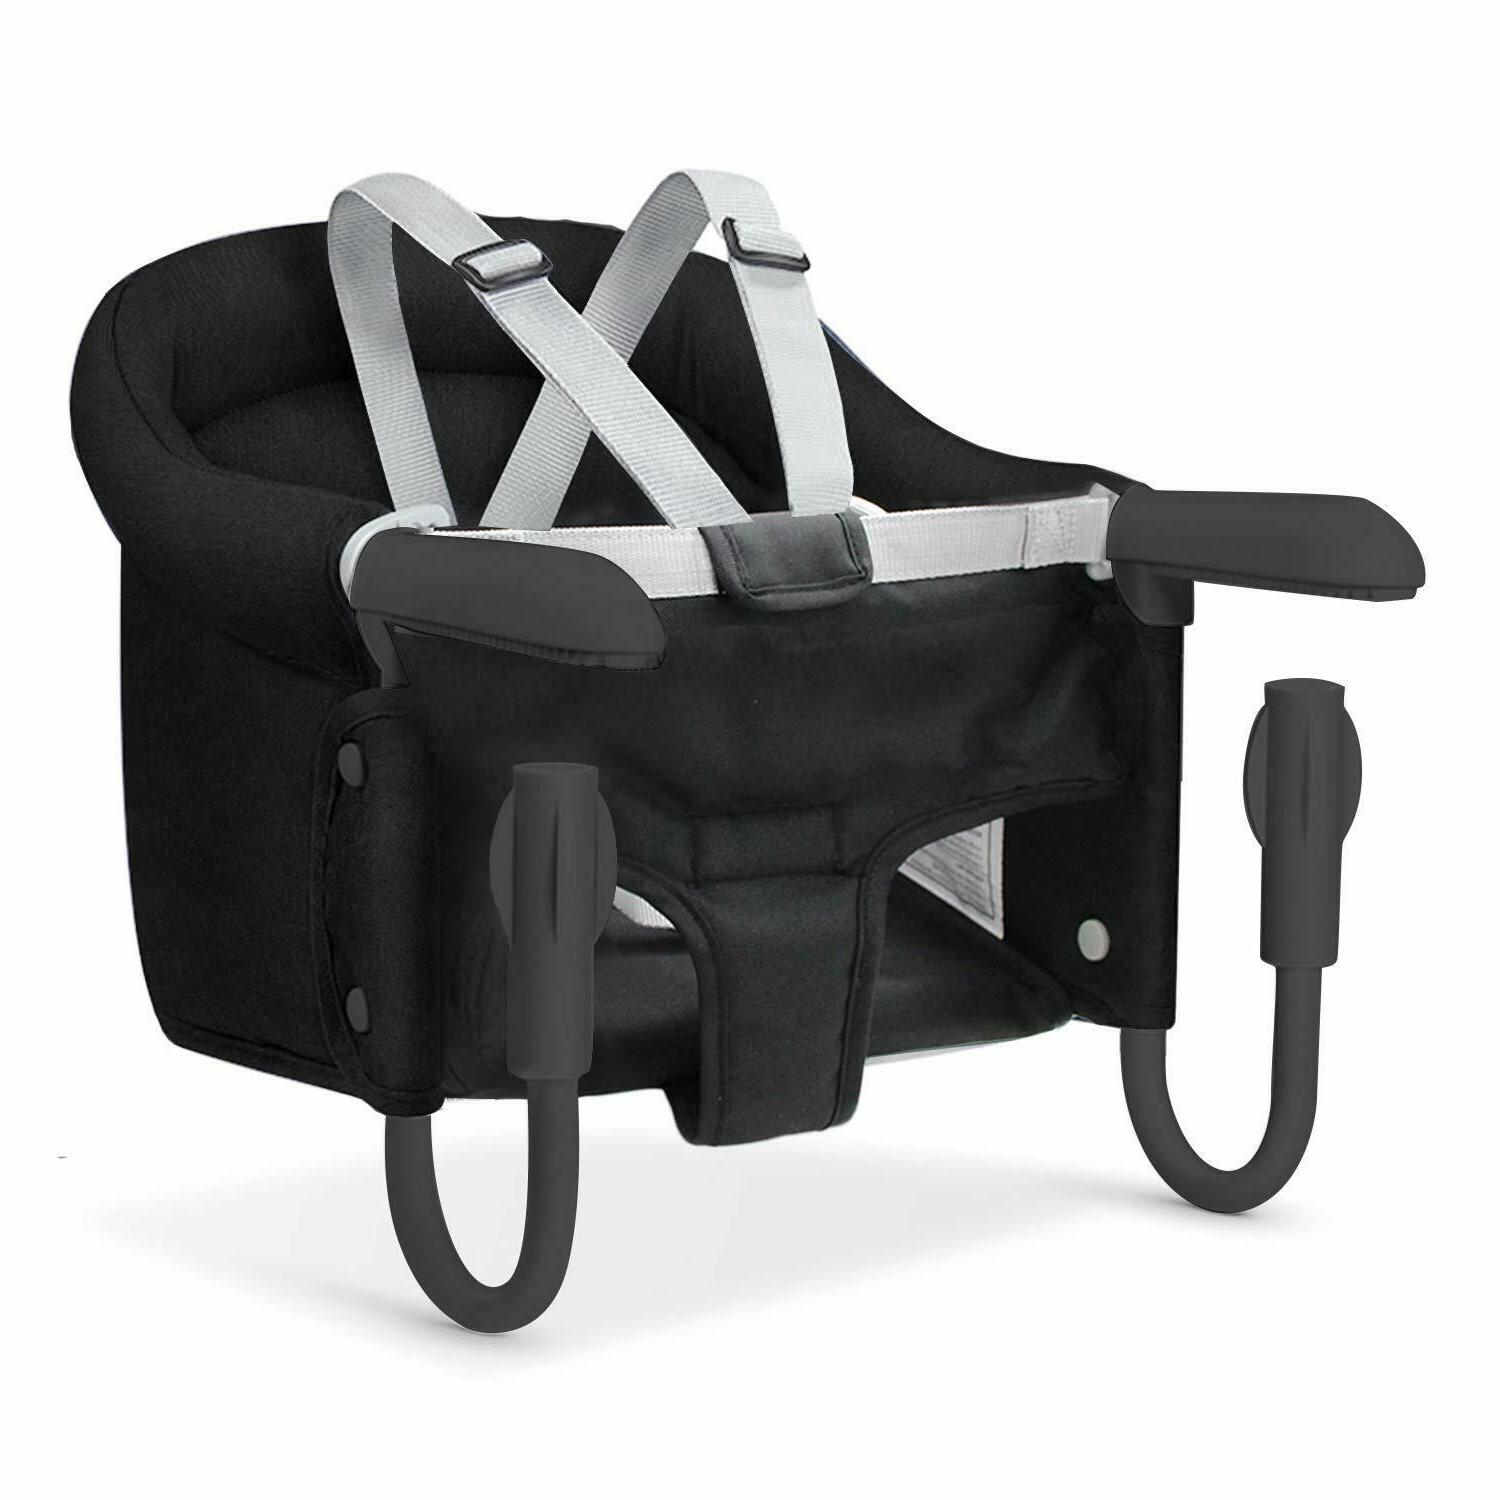 Folding Baby Table Seat Travel New